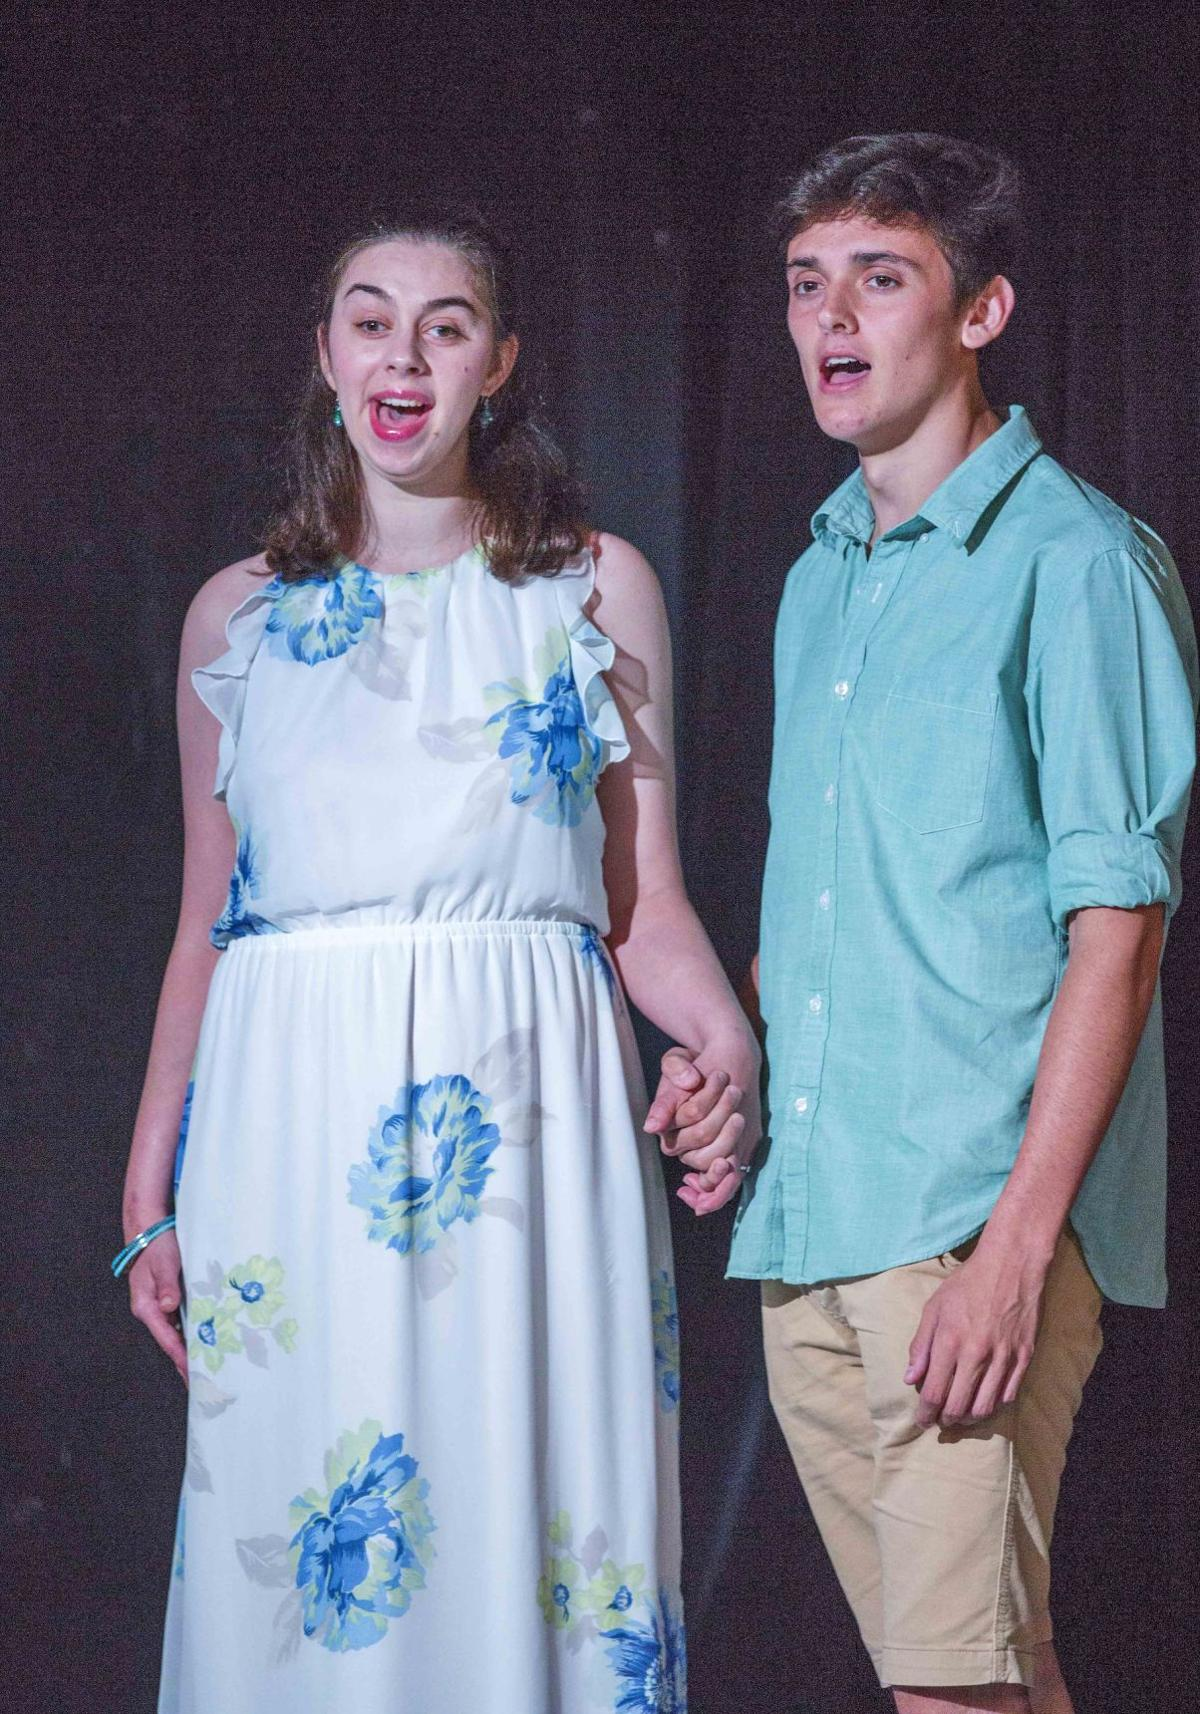 On Stage and Inclusive offers theater for all | Blog: Go Triad - A&E ...